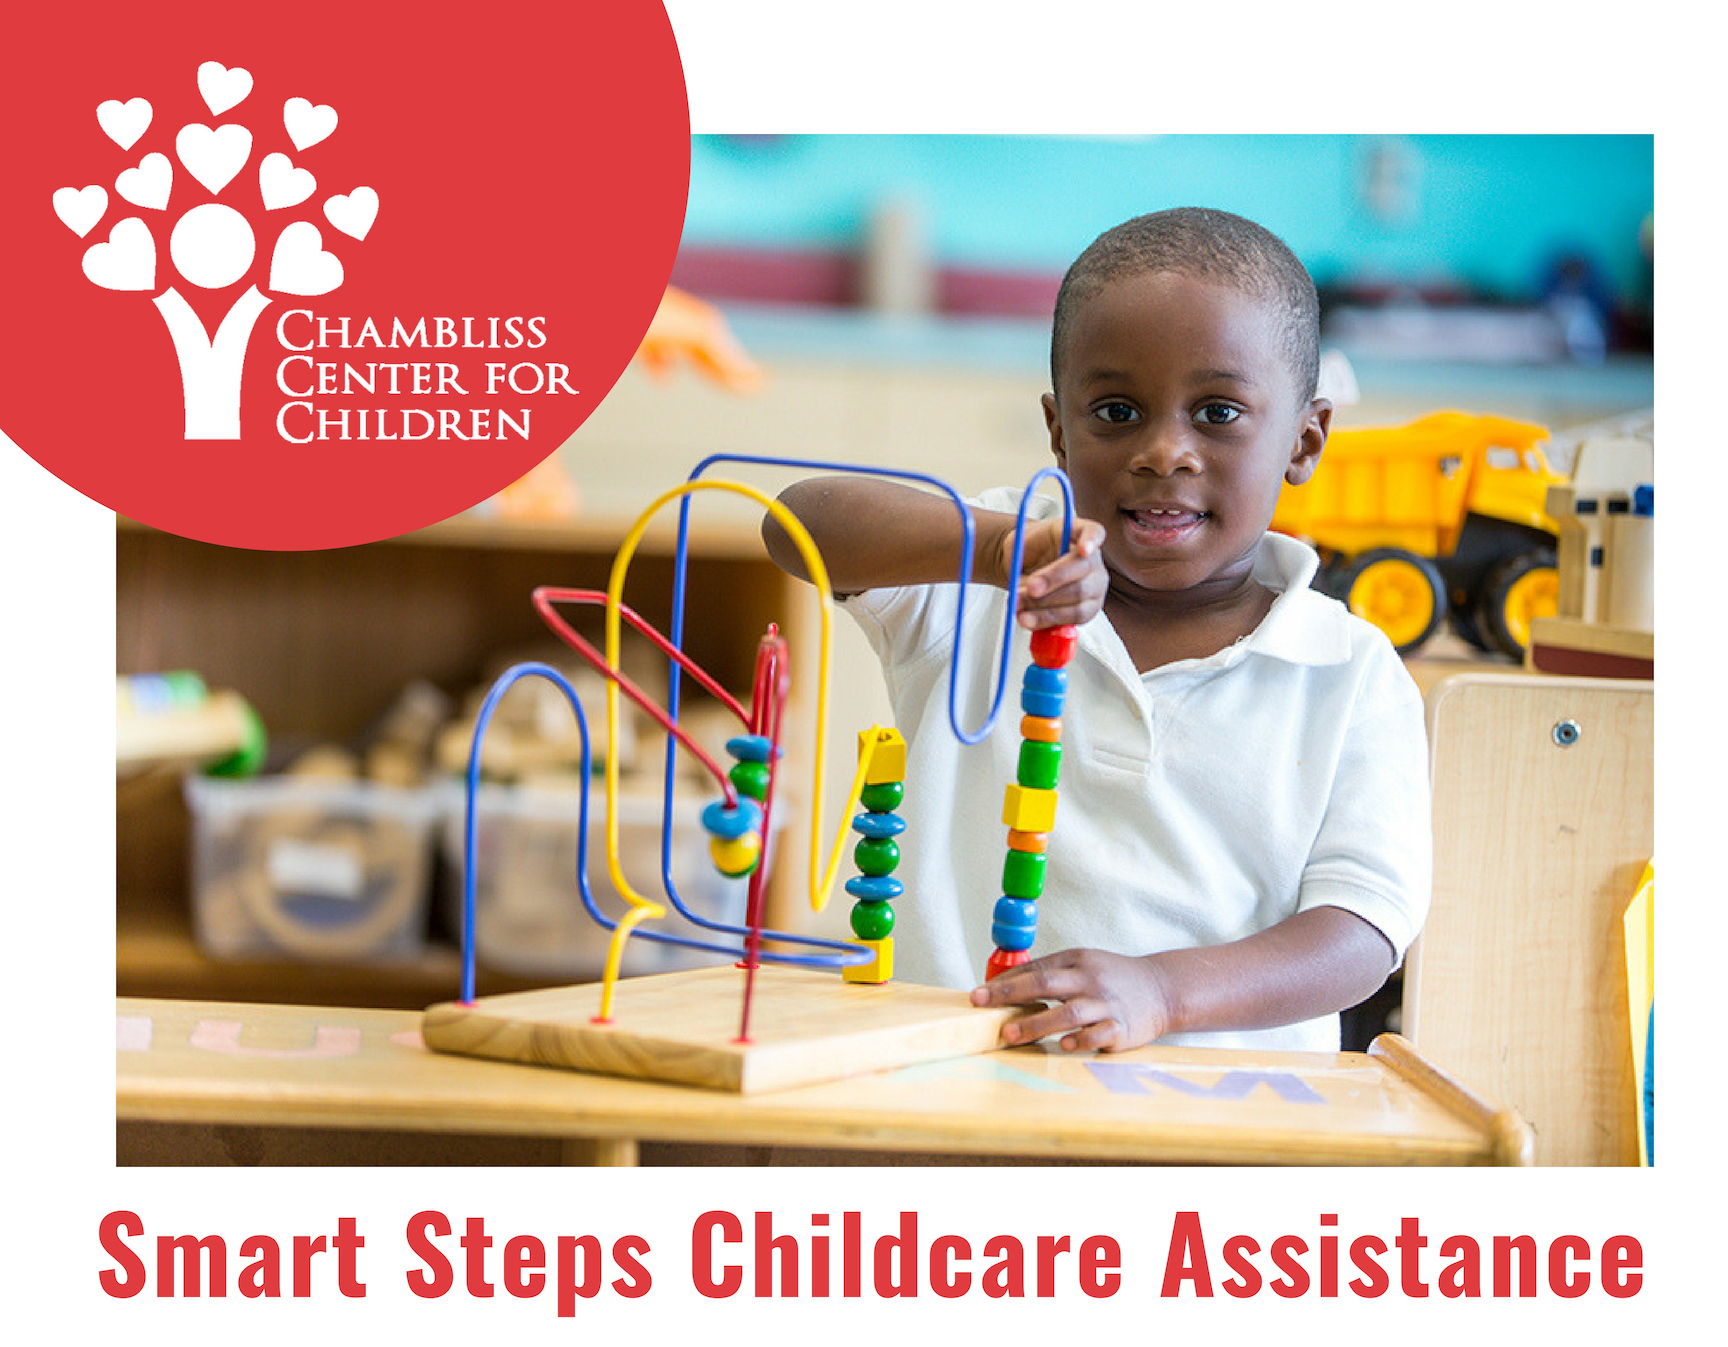 Smart Steps Child Care Assistance - Families who meet the income eligibility requirements must apply for Smart Steps, a child care payment assistance program for parents who are working or in school. Fill out the application and return to the local DHS office, located at 5600 Brainerd Road, Suite 602-A, 2nd Floor. Find more information HERE.